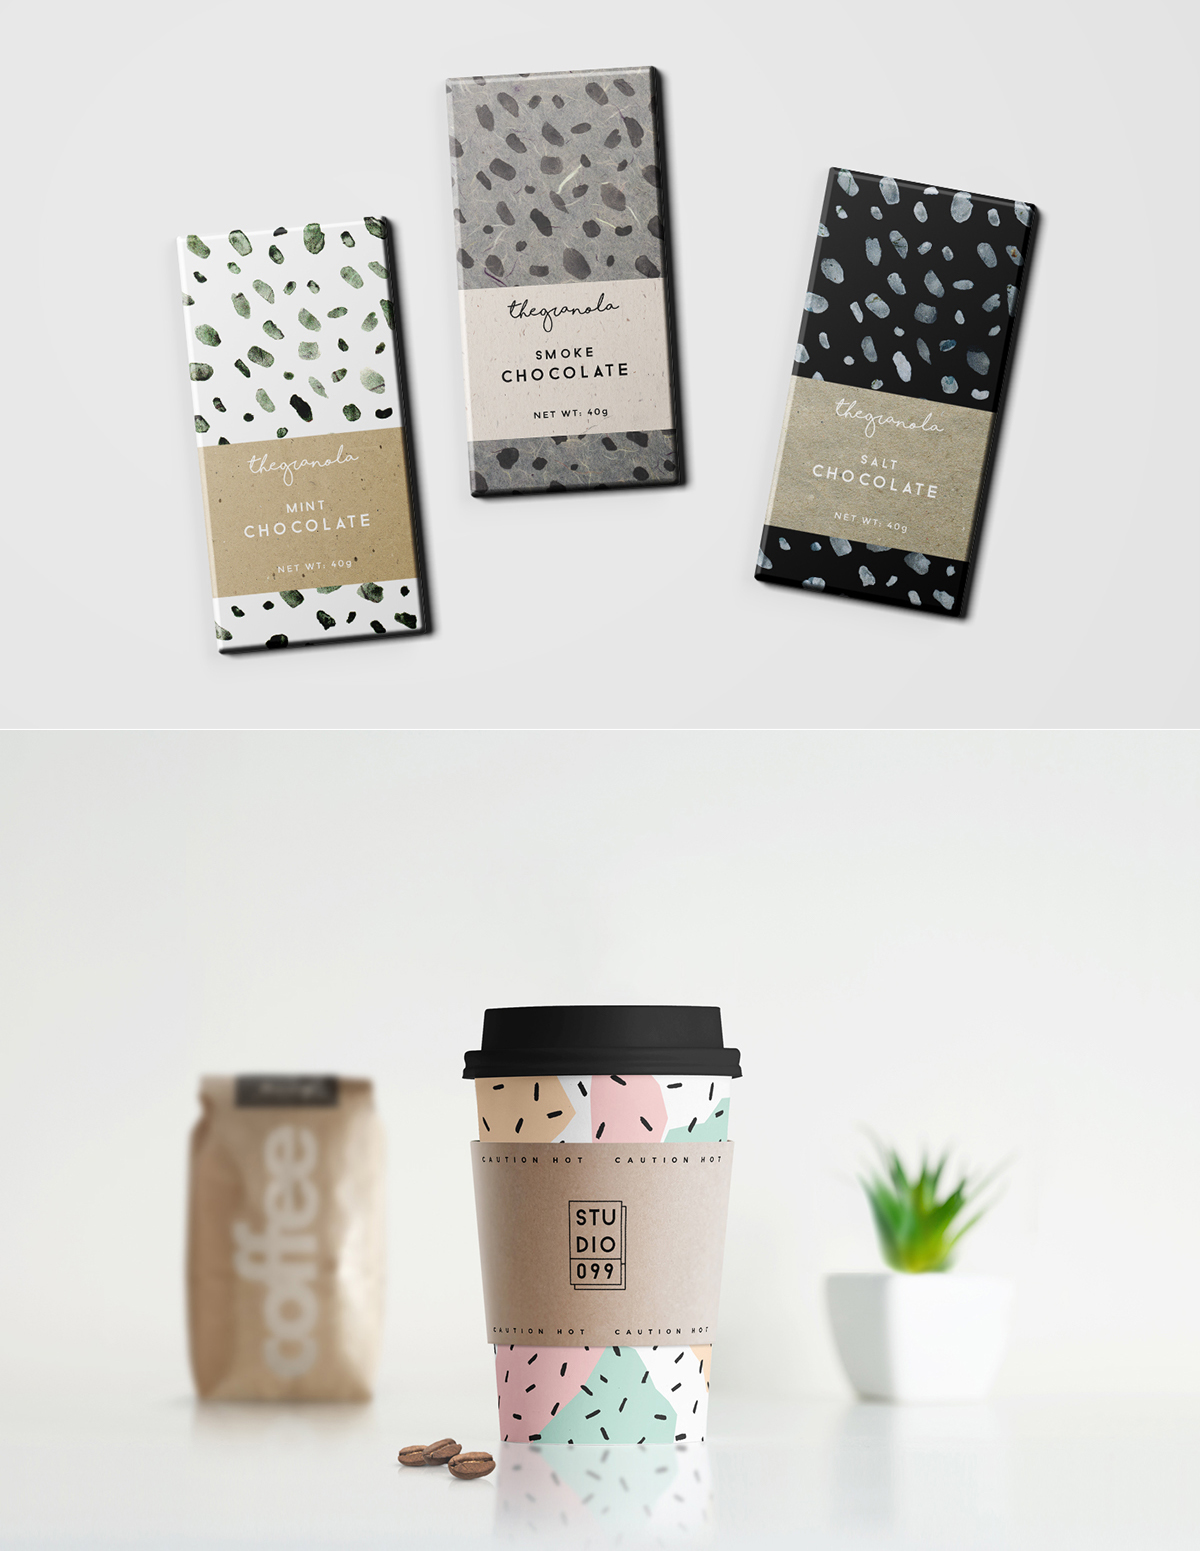 Hand Drawn Patterns in Packaging